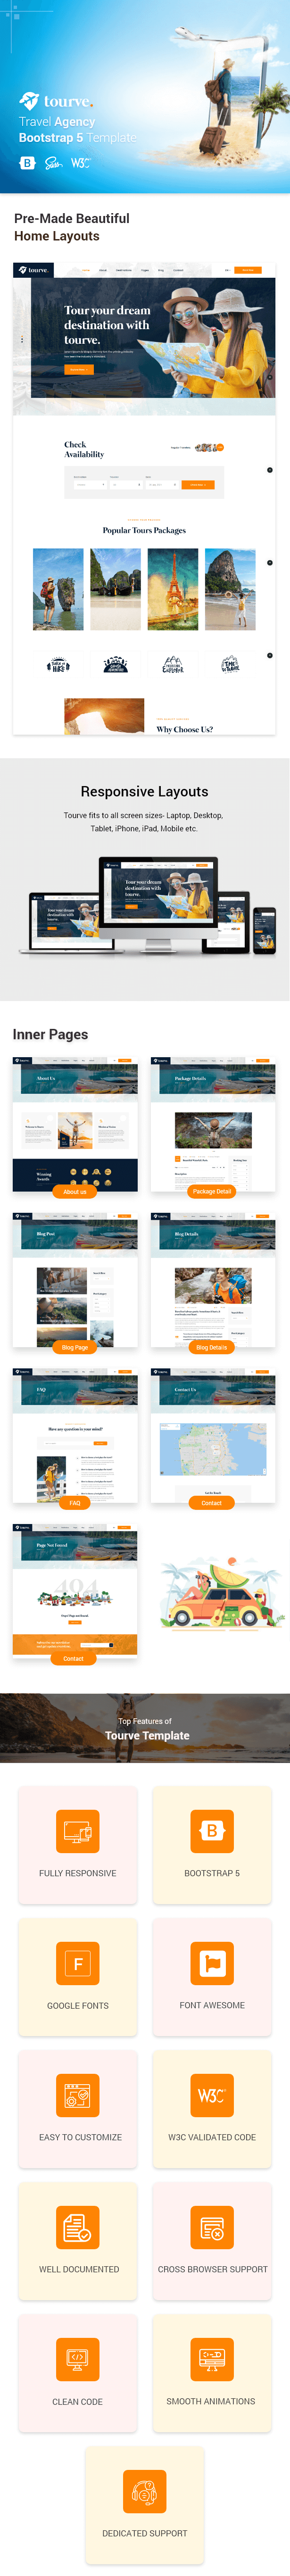 Tourve - Travel Agency Bootstrap 5 Template - 1